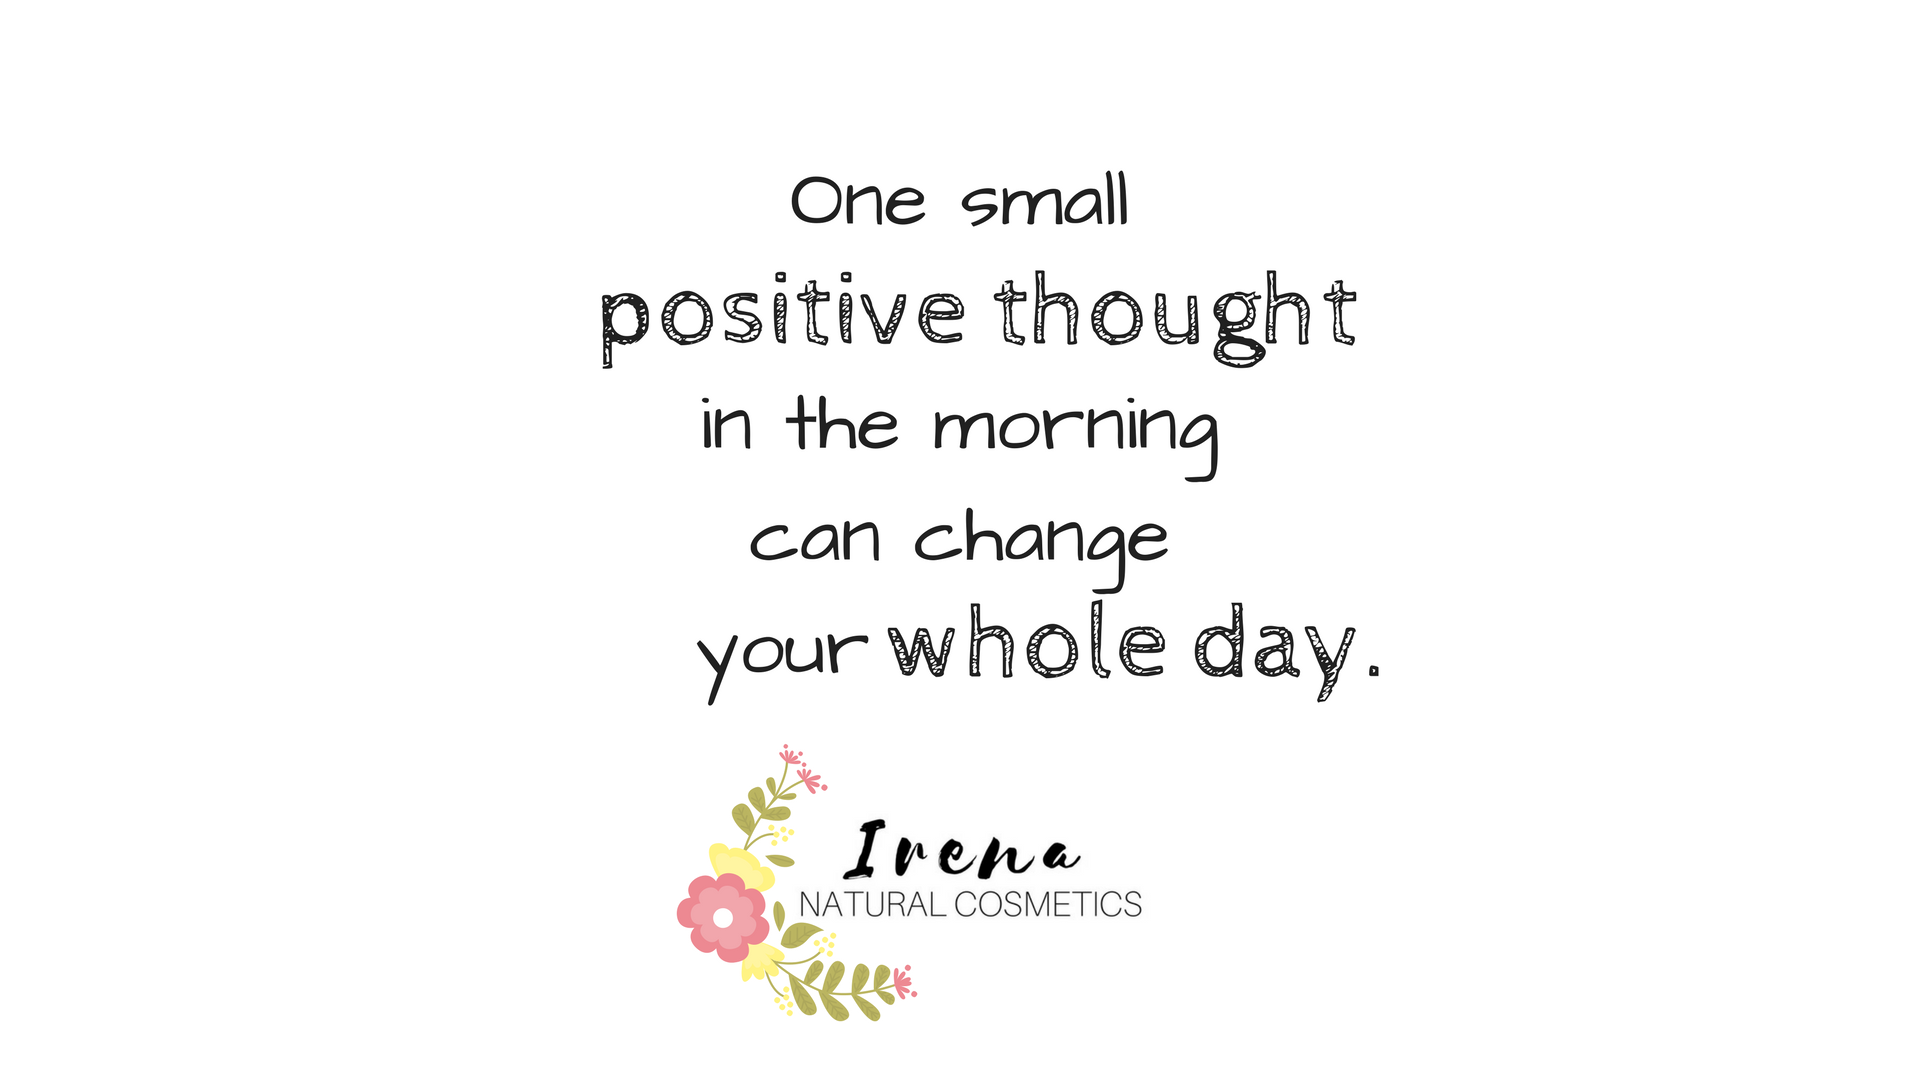 One small positive thought in the morning can change your whole day. (1)